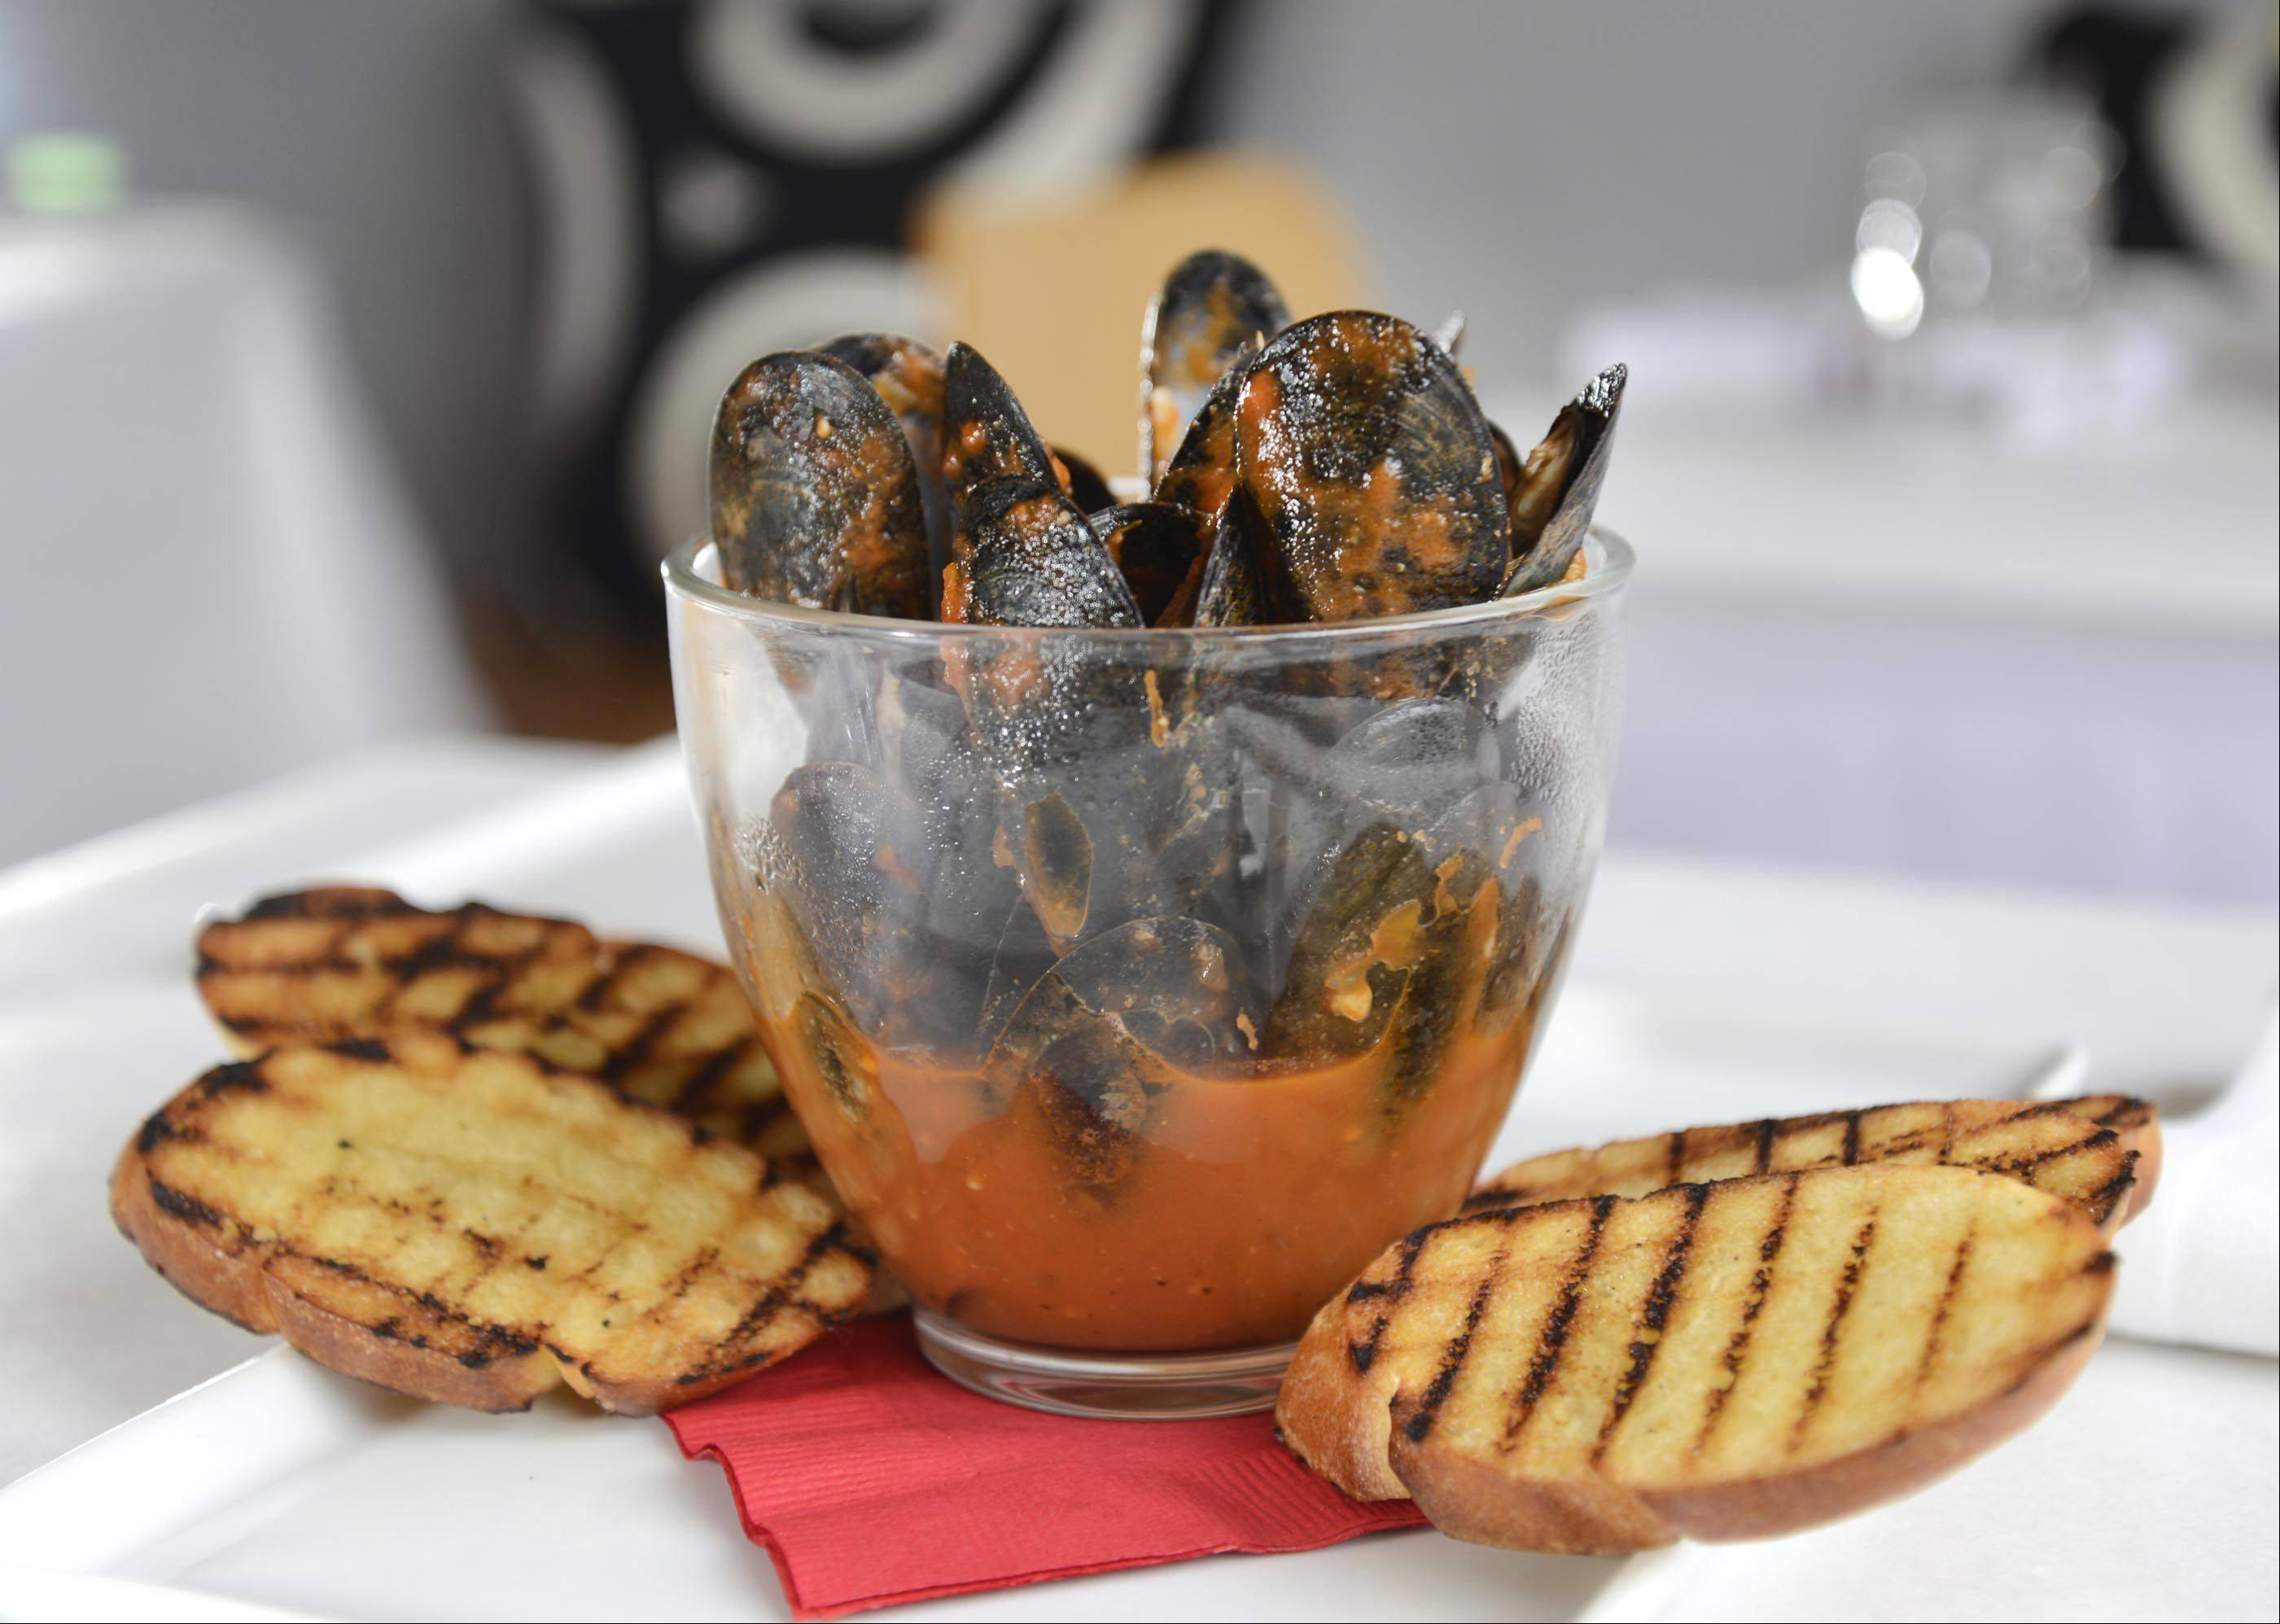 Al mejillon (mussels) served with Spanish chorizo and tequila sauce is an example of the fusion cuisine created at Altiro in Geneva.